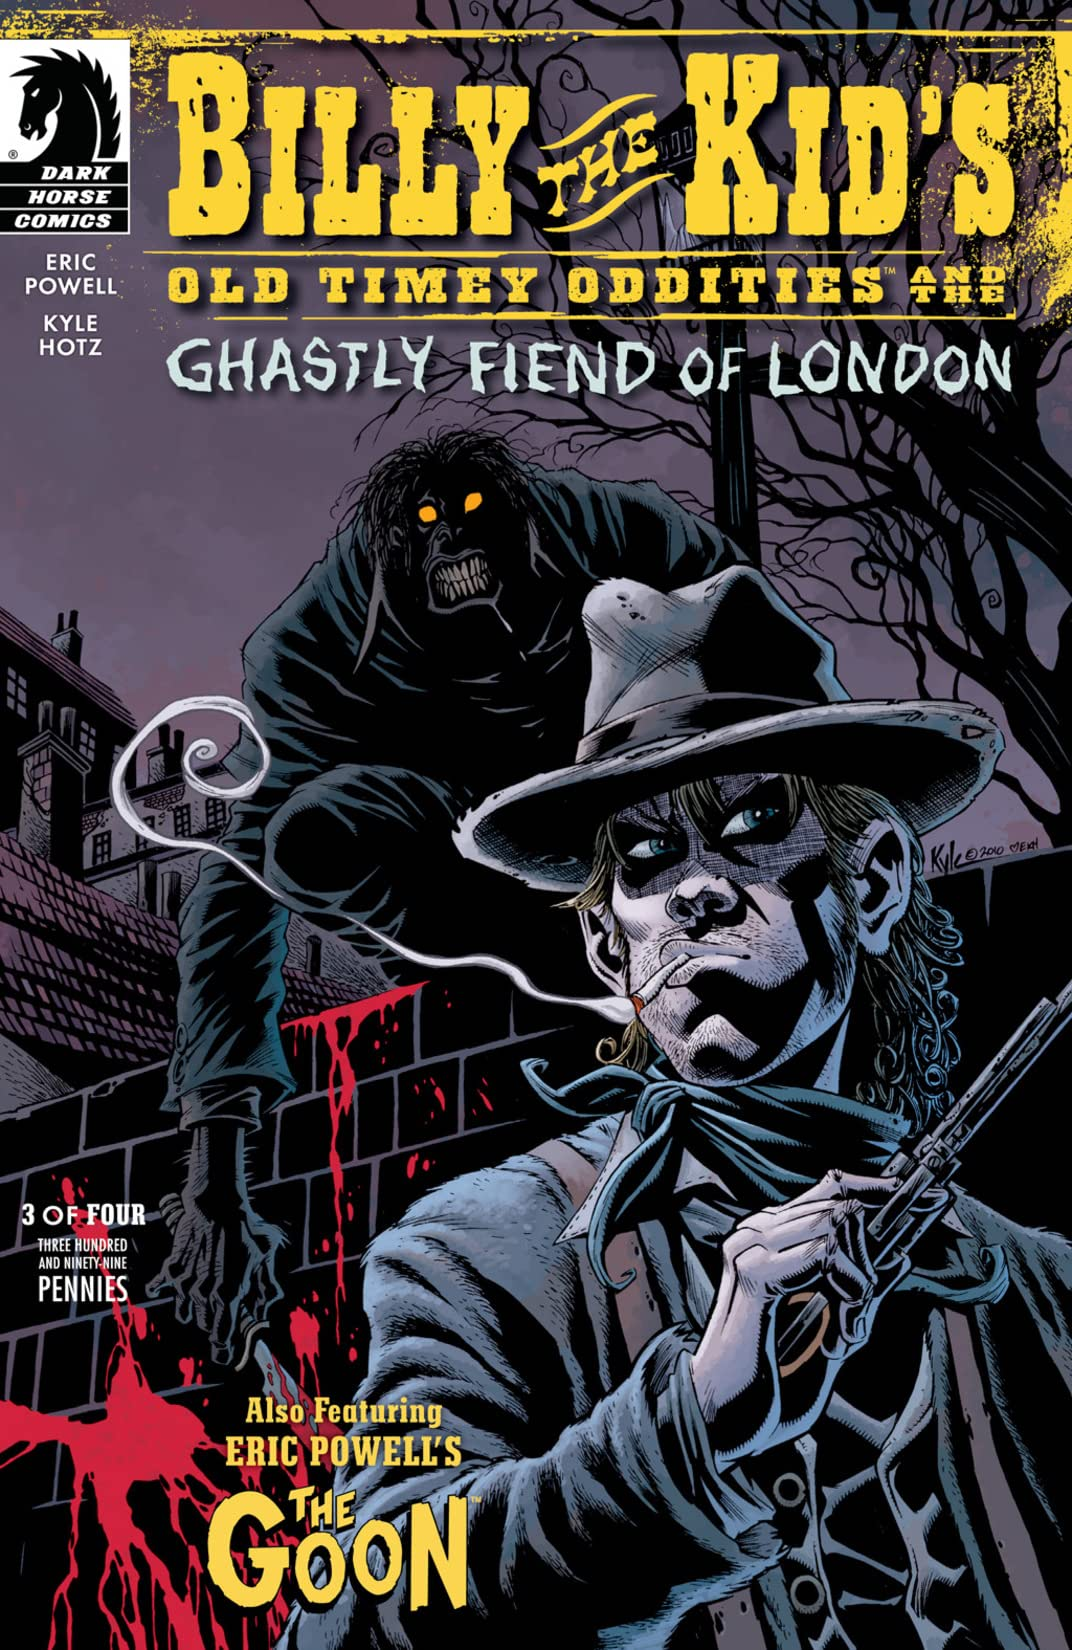 Billy the Kid's Old Timey Oddities and the Ghastly Fiend of London #3